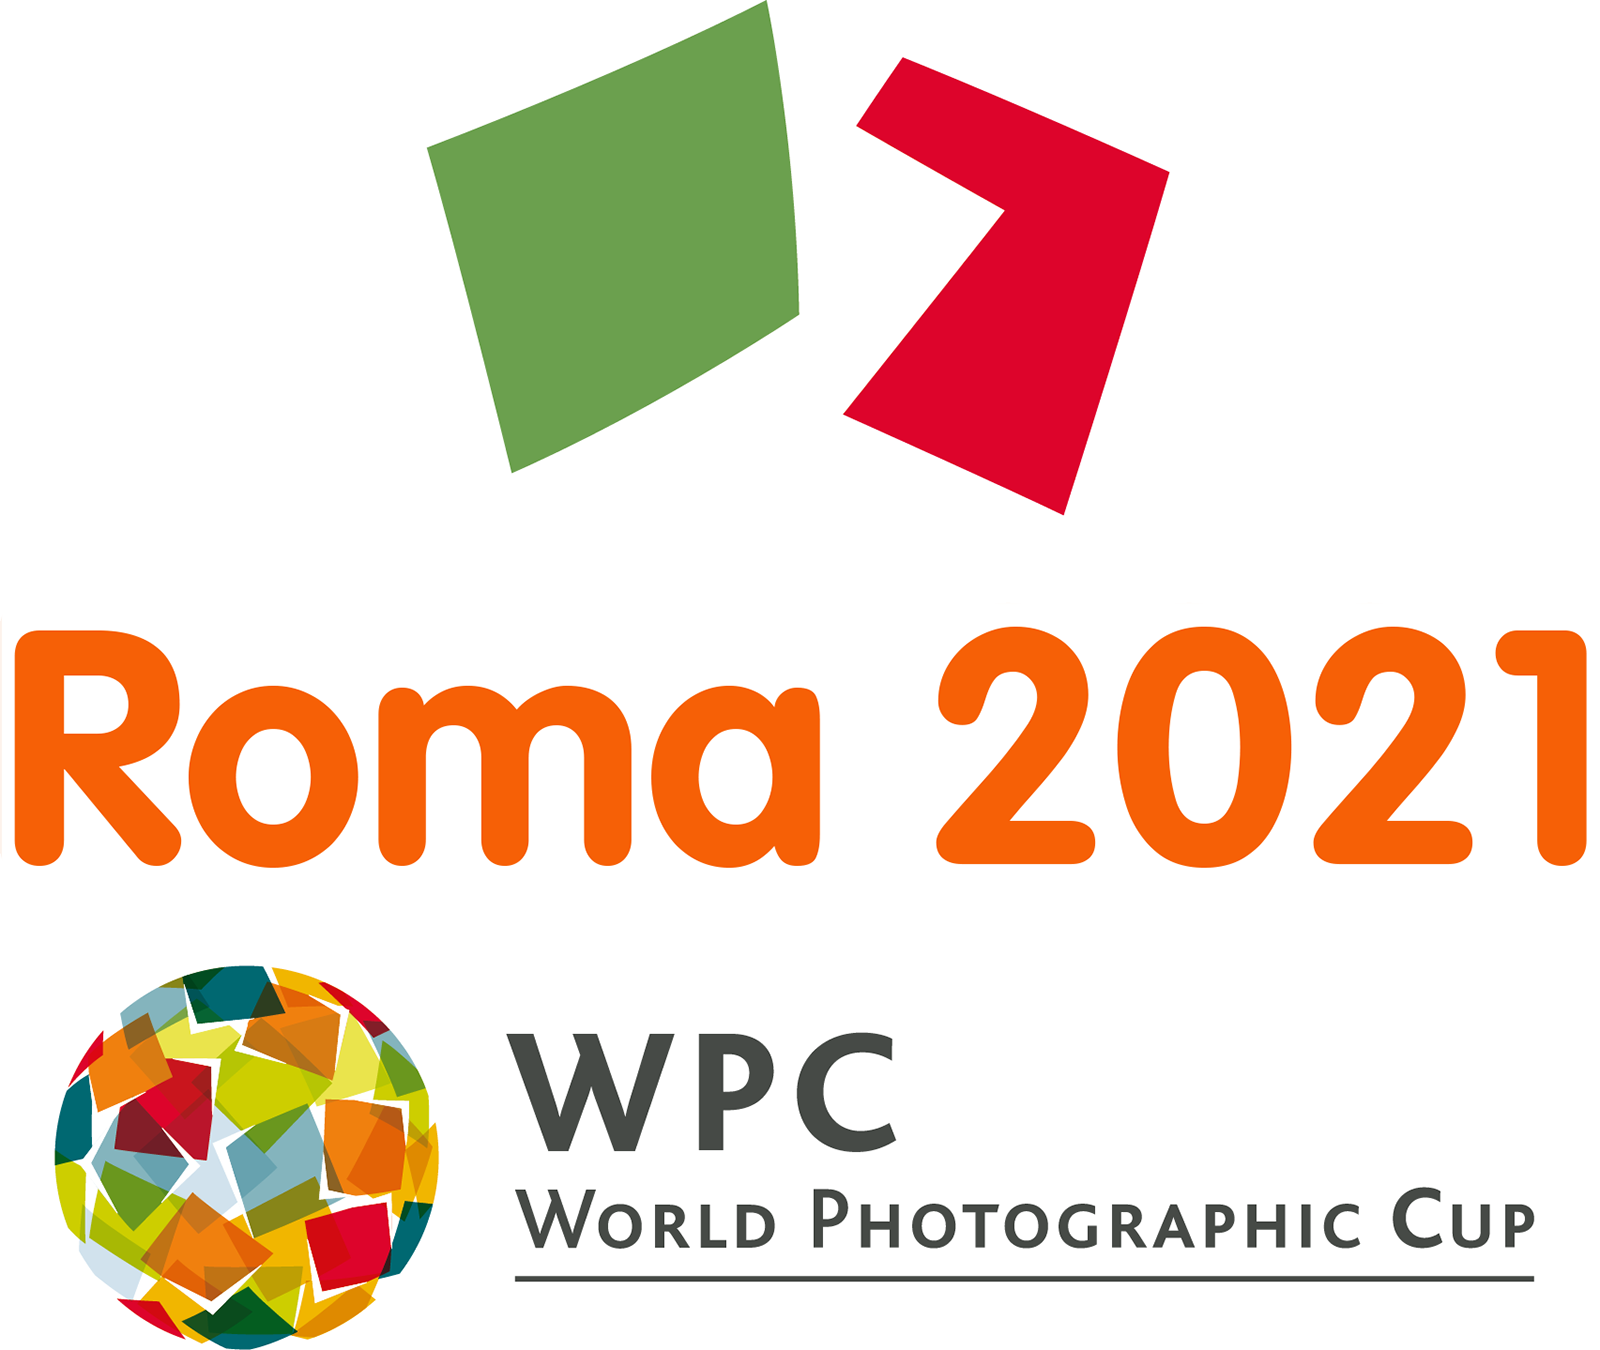 World Photographic Cup 2021